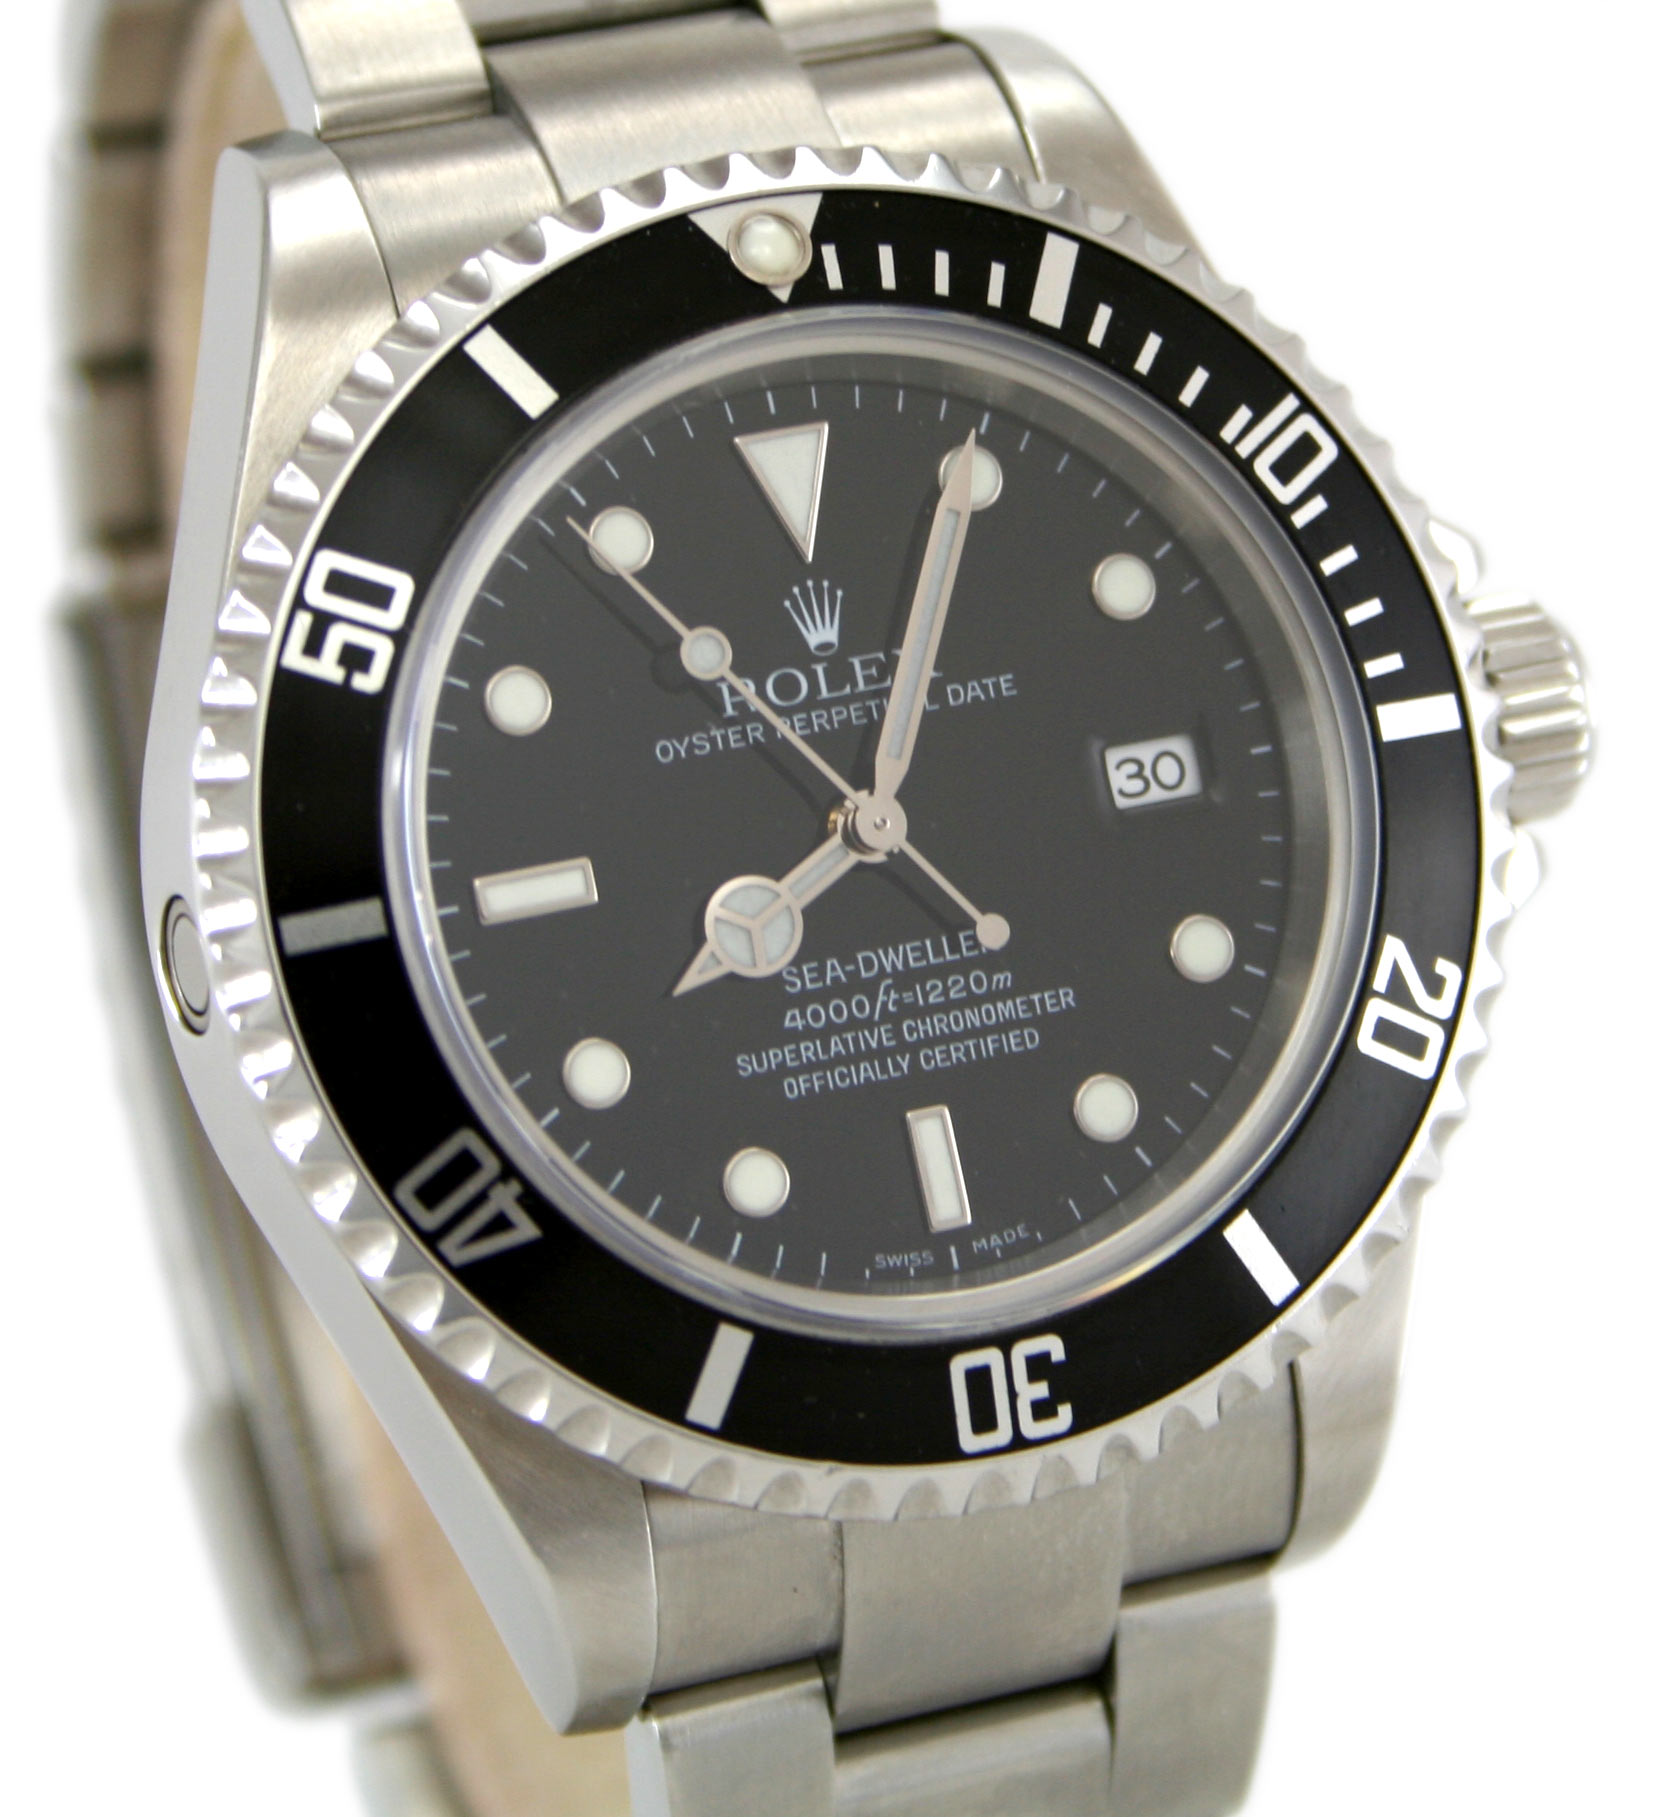 How to Find a Rolex Serial Number | Our Everyday Life